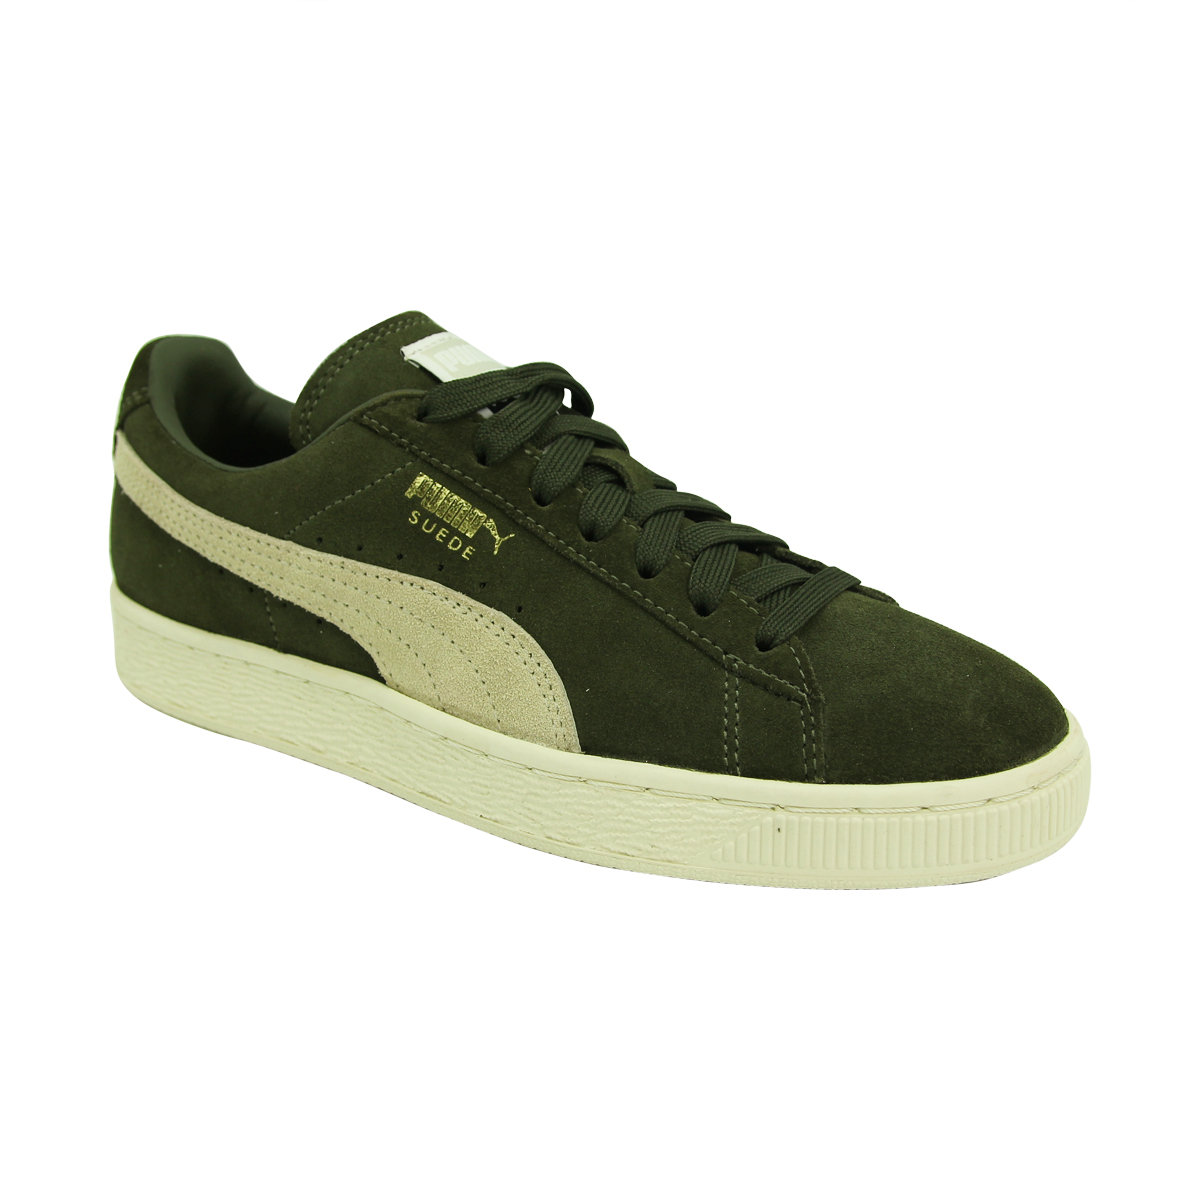 Puma SUEDE CLASSIC INFINITY Suede Men Sneakers Shoes  fad51b5a1